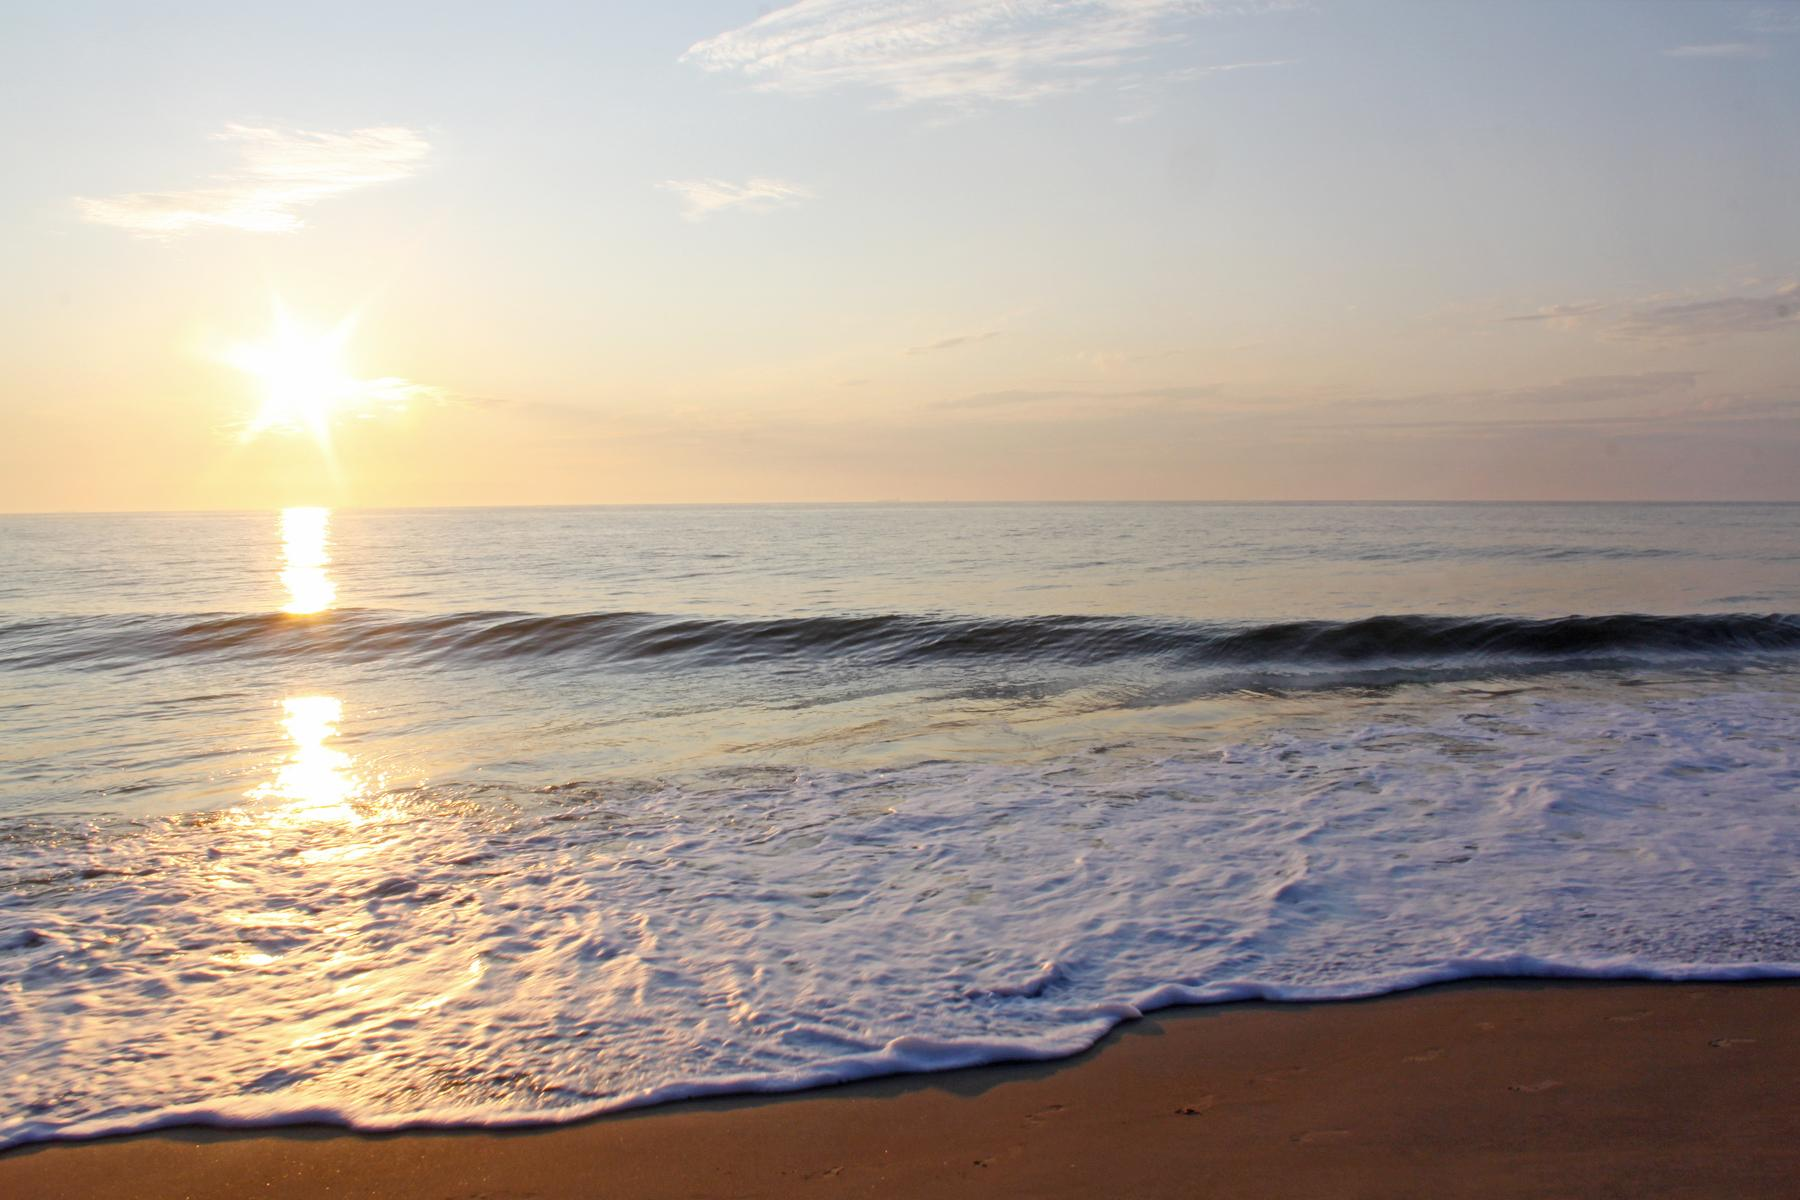 About three hours away from D.C., give or take some traffic, lies Bethany Beach, Delaware, a haven for low-key vacationing. (Image: Courtesy VisitDelaware.com){ }